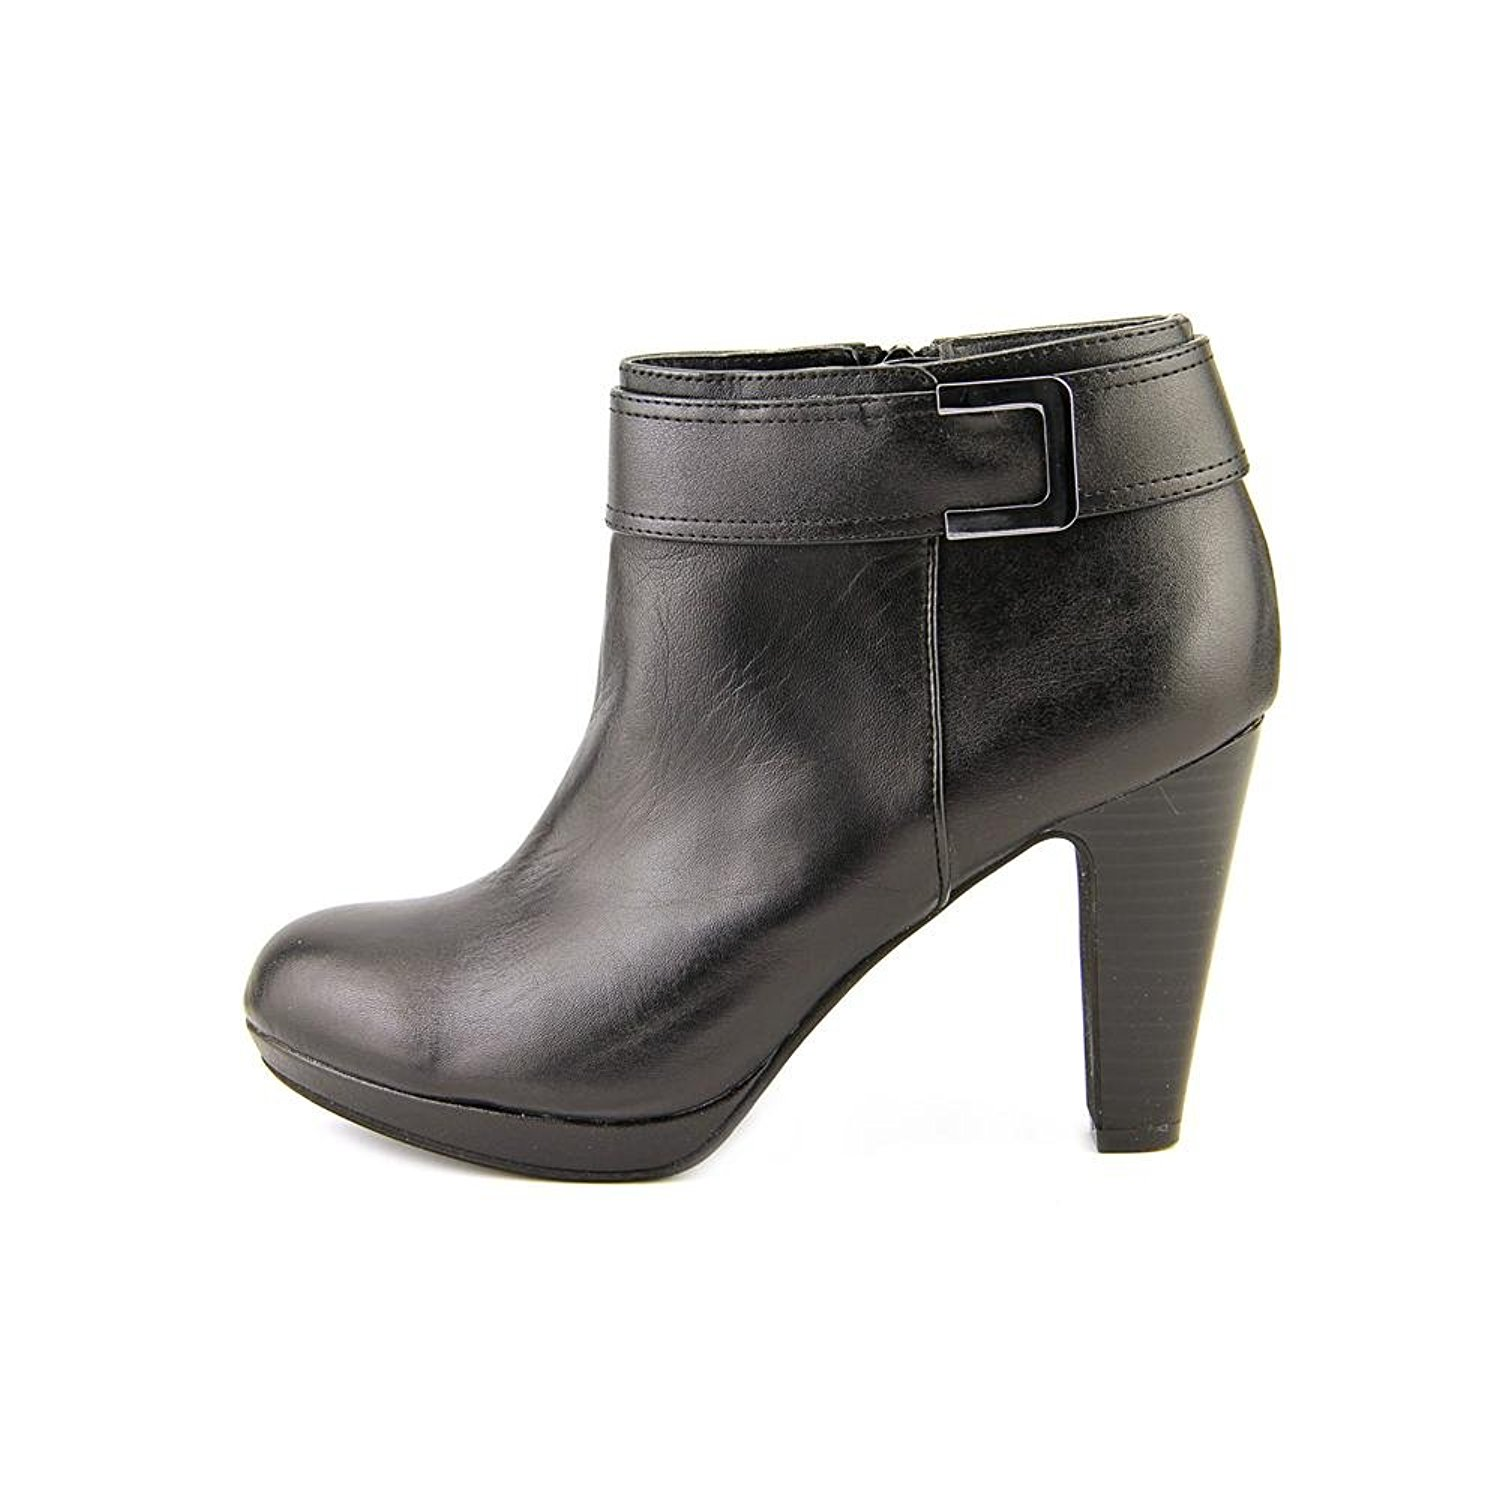 Womens Netty Leather Almond Toe Ankle Fashion Boots